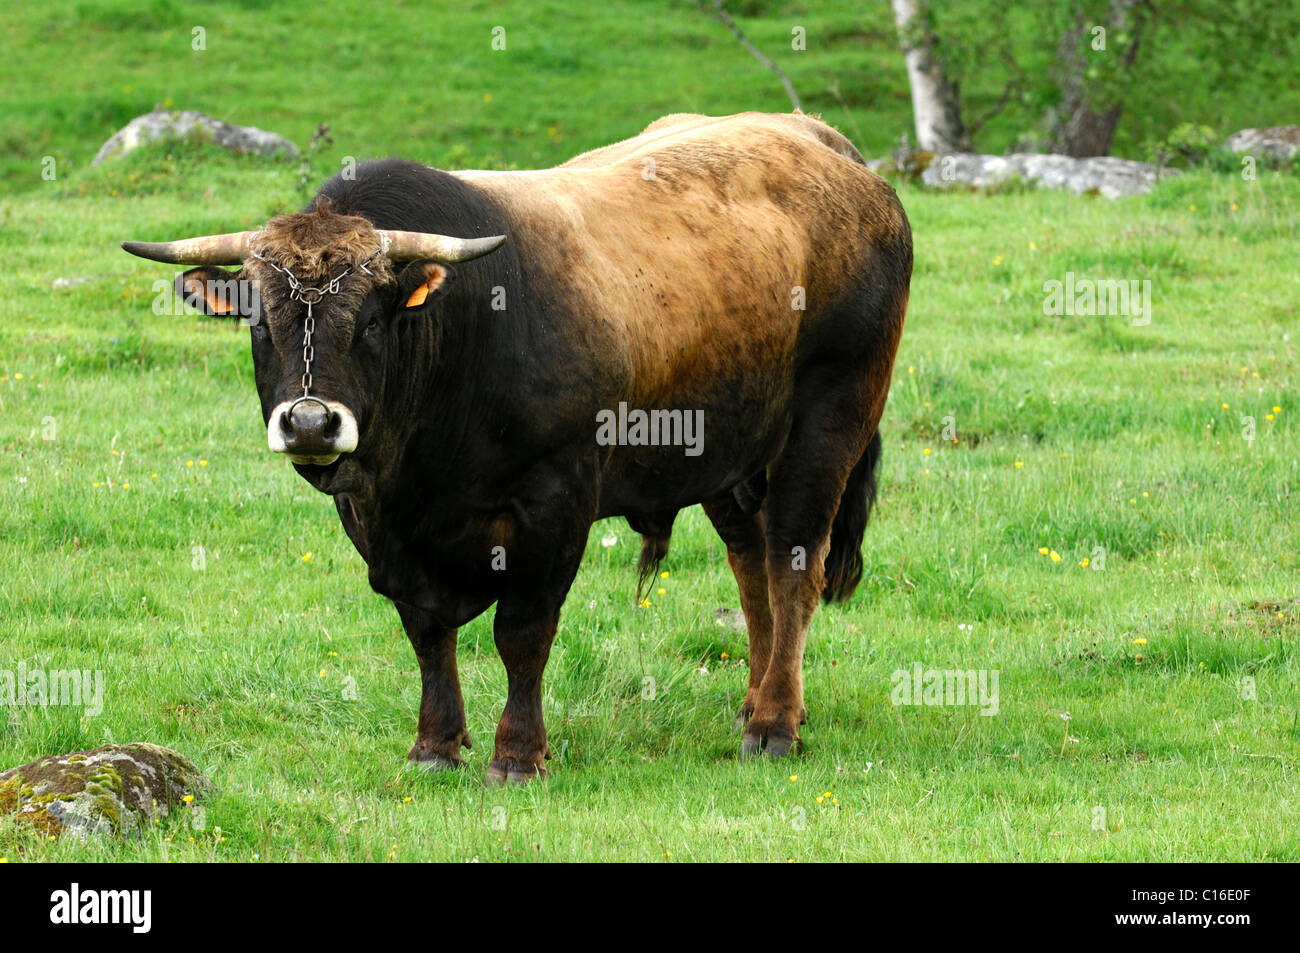 Standing Aubrac breeding bull, Aubrac Cattle, France, Europe - Stock Image